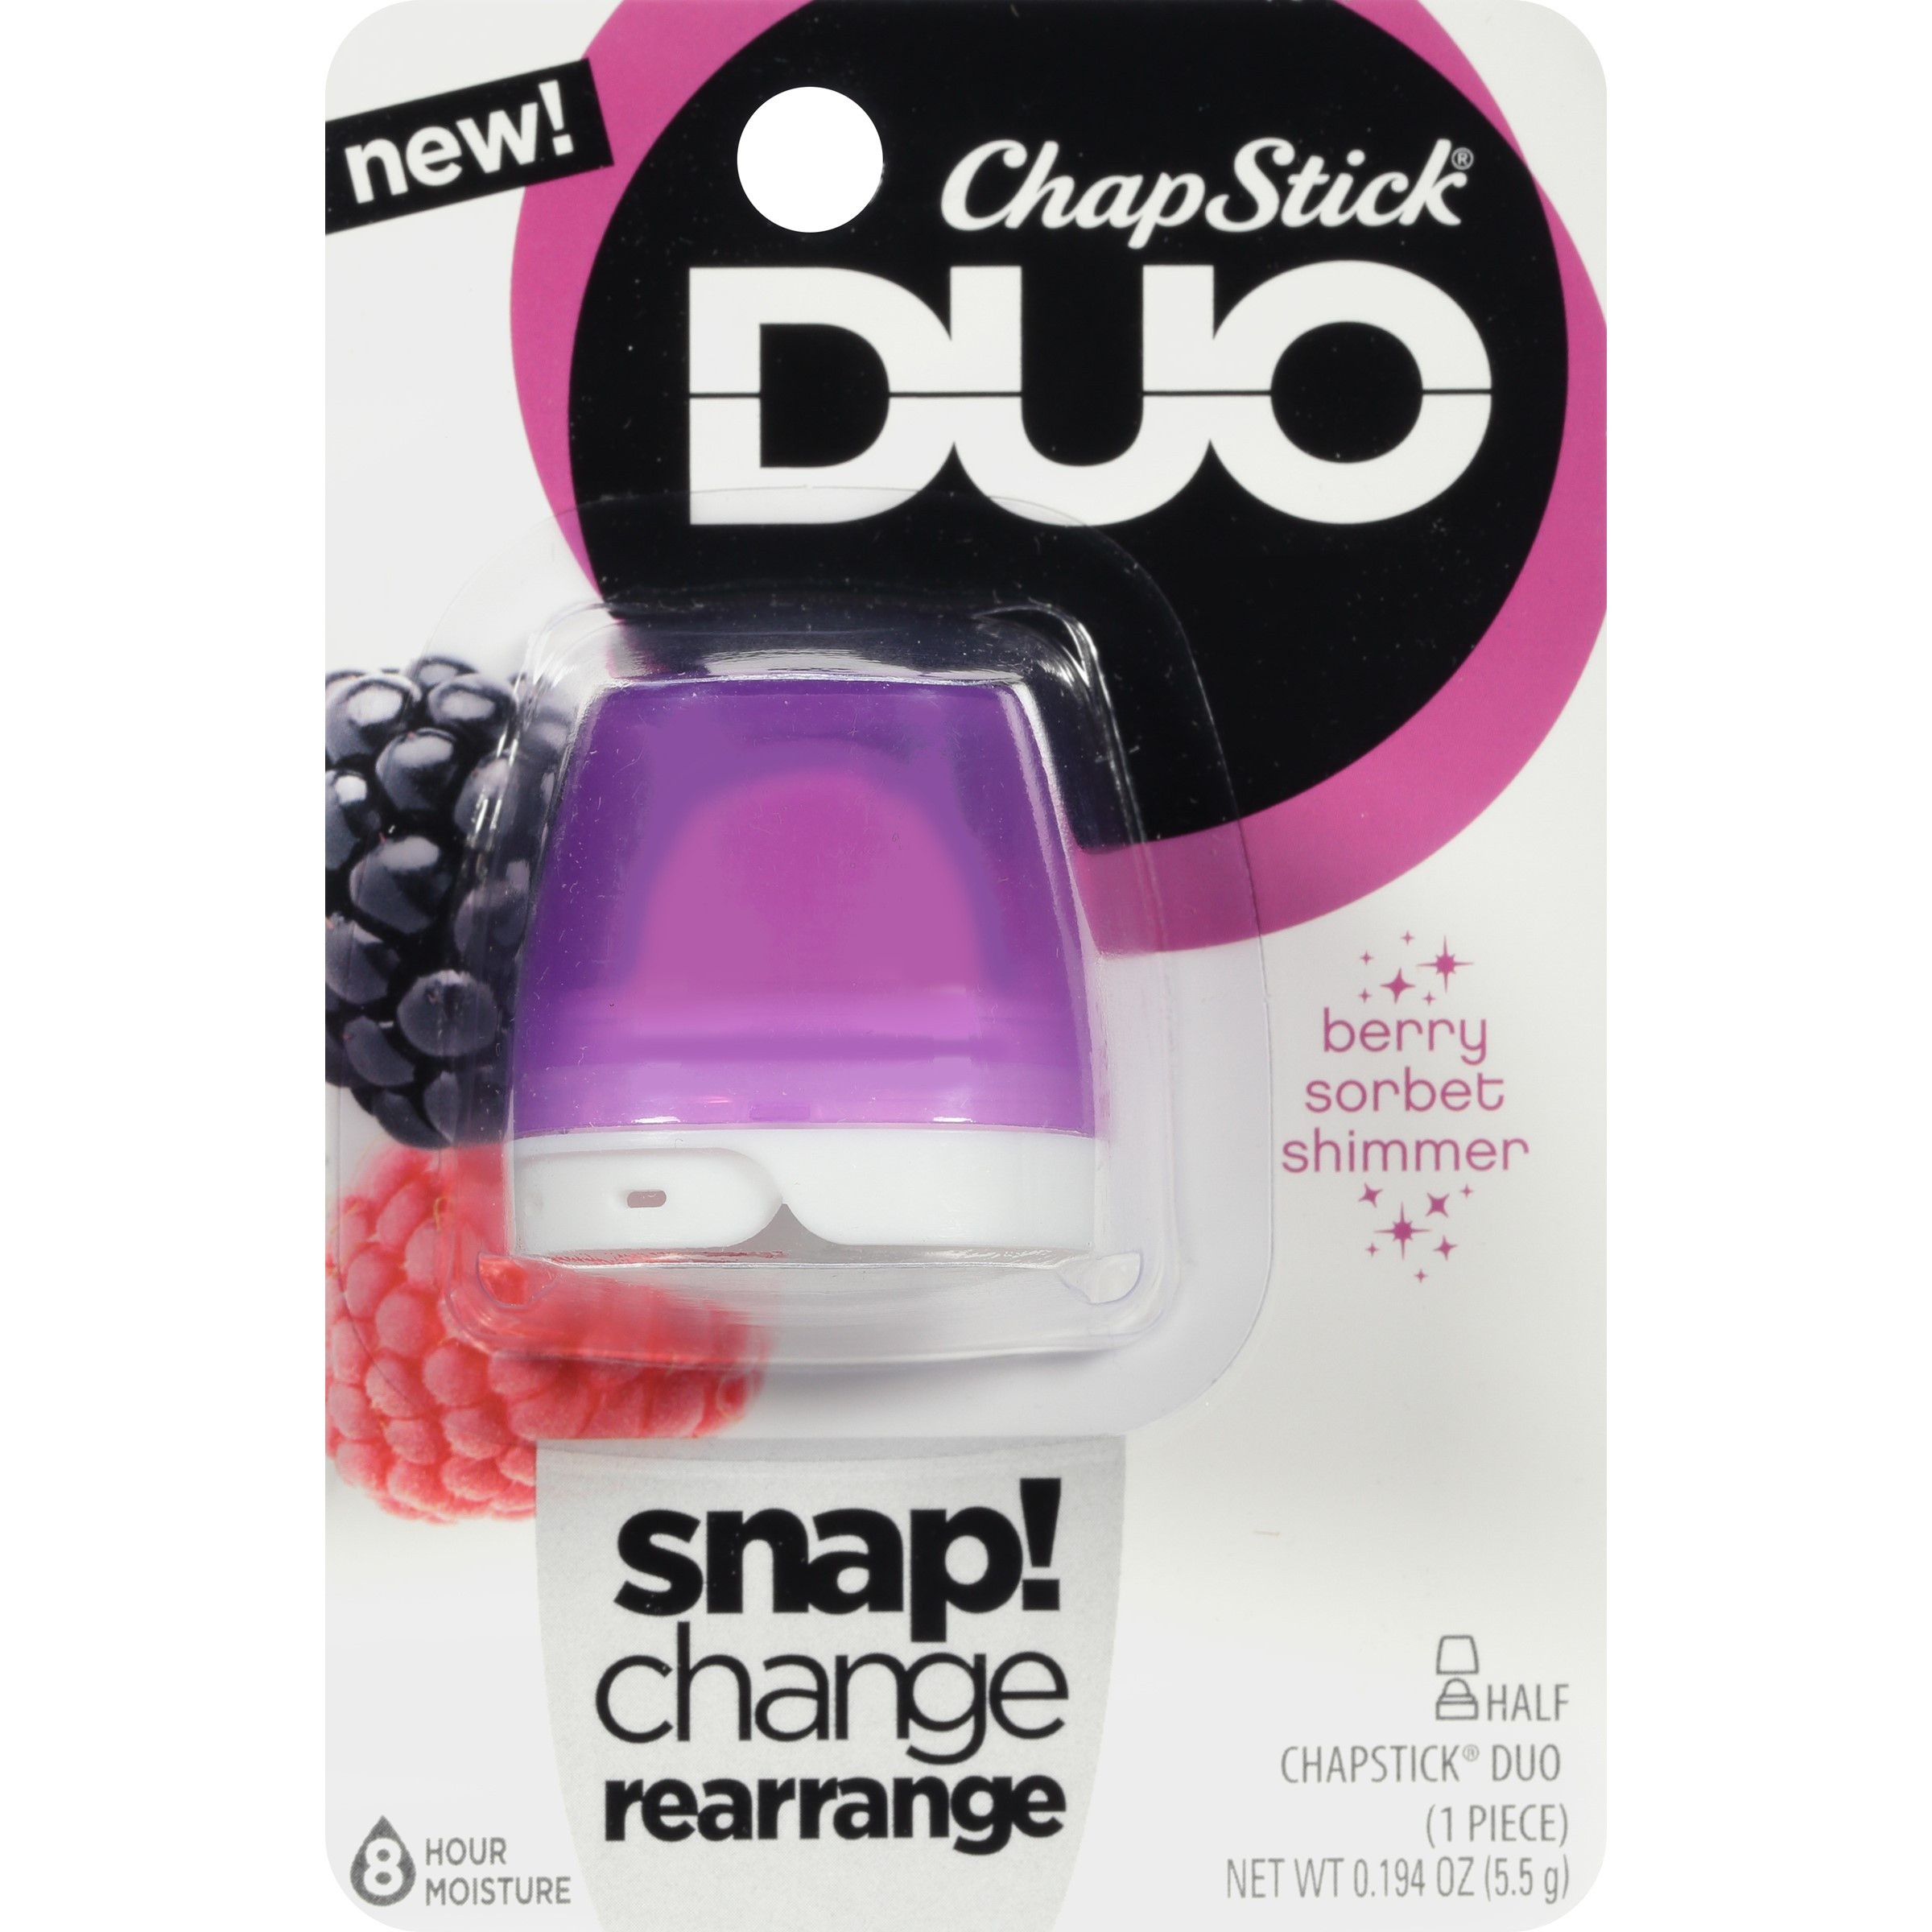 (3 pack) ChapStick Duo Blister Card, Berry Sorbet Shimmer, 0.2 Oz